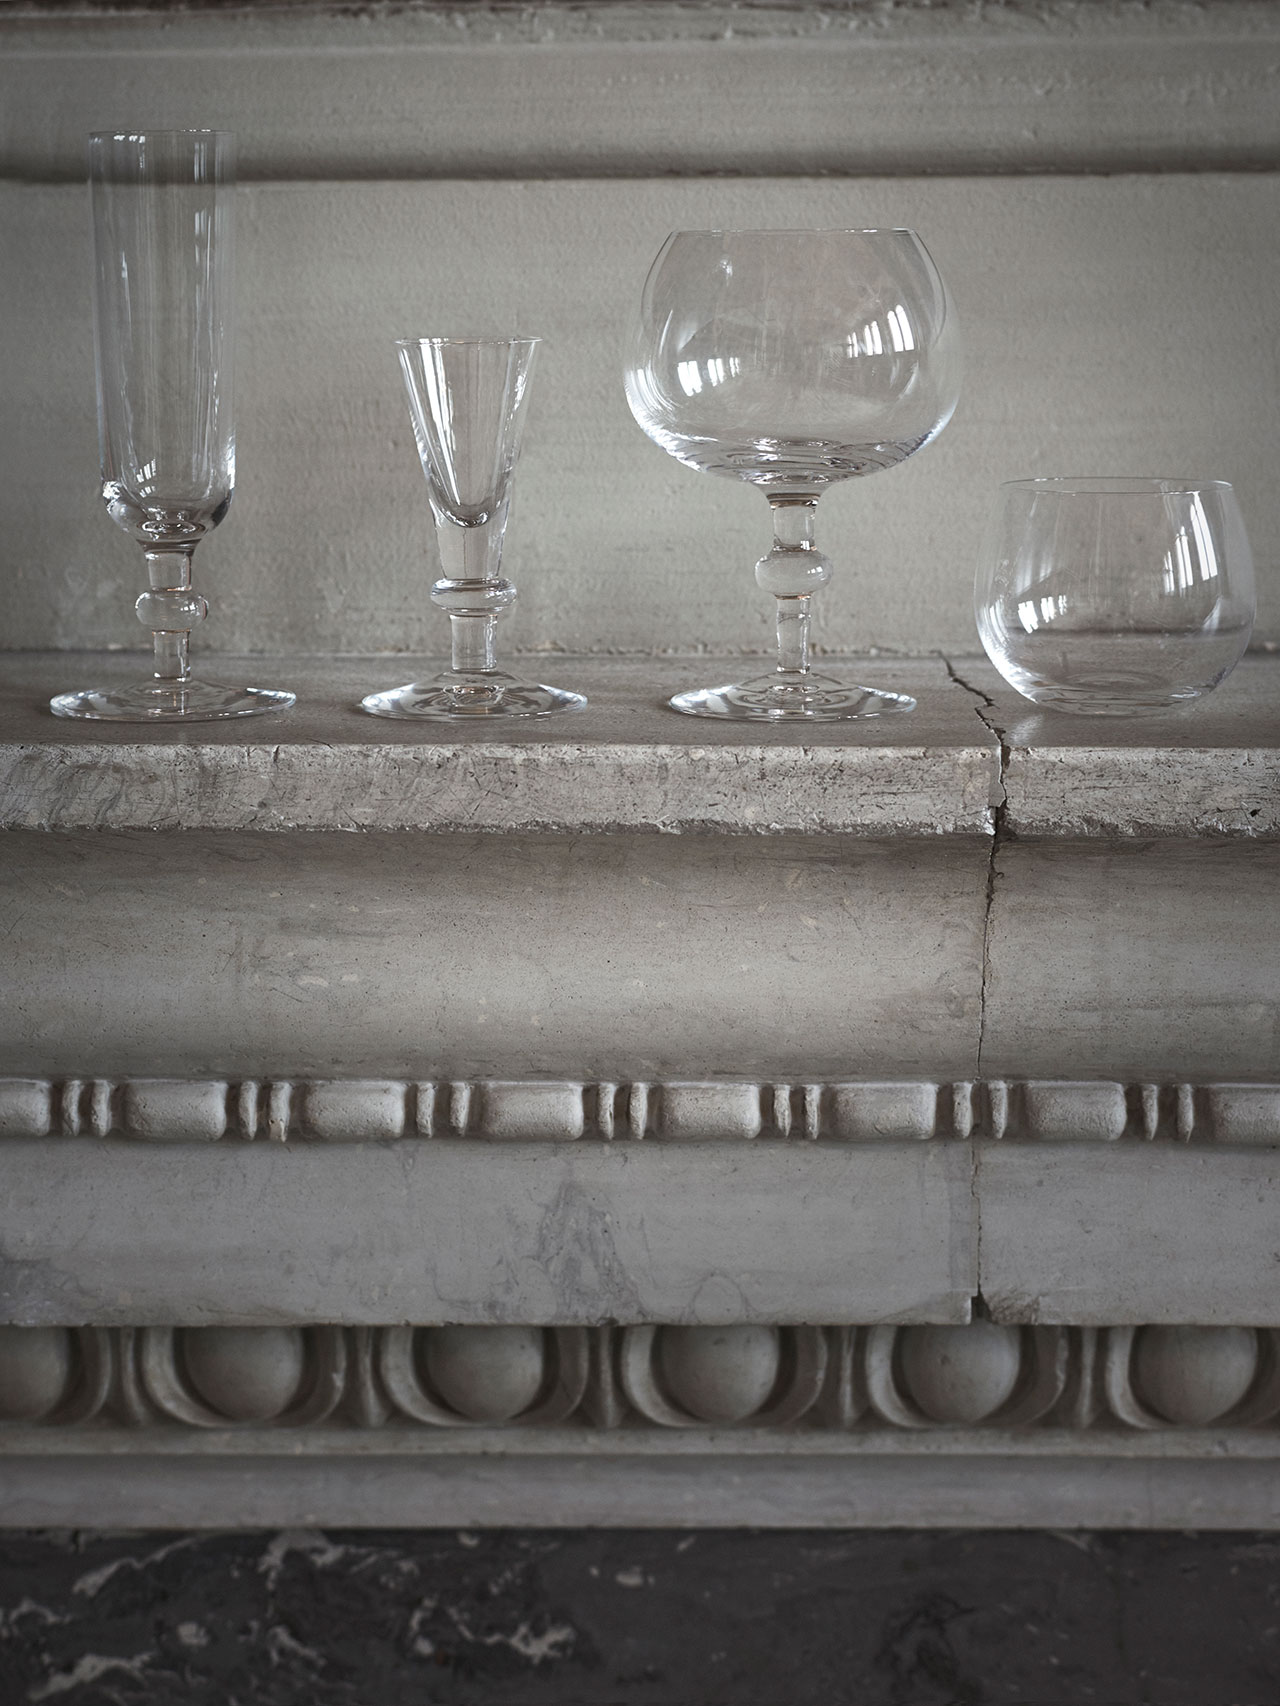 NM& 061: Glass tableware by Carina Seth Andersson produced by Skruf. Photo by Pia Ulin.